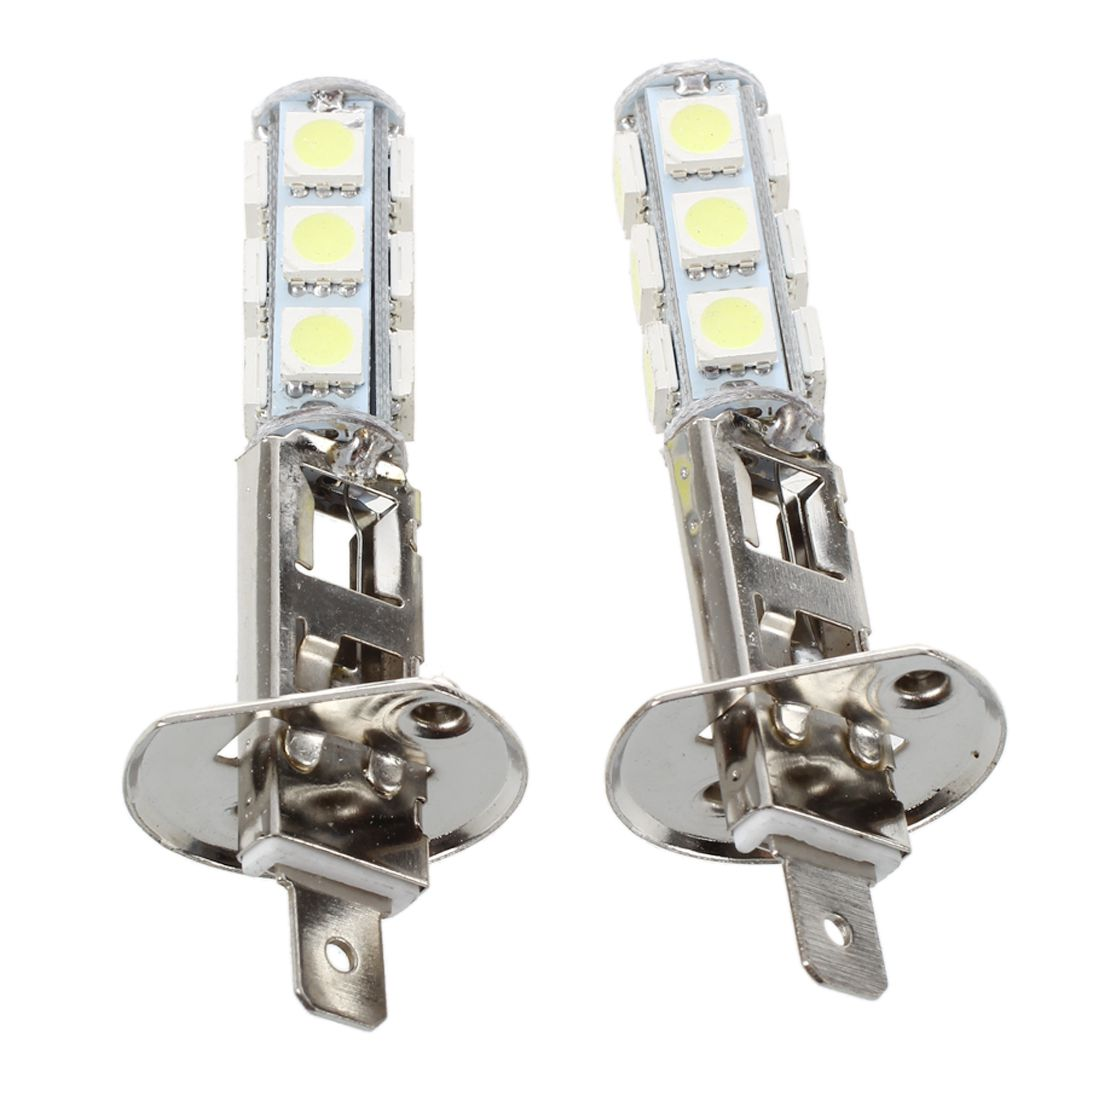 2 Pcs Auto Light Headlight Lamp H1 White 13 SMD 5050 LED Chips